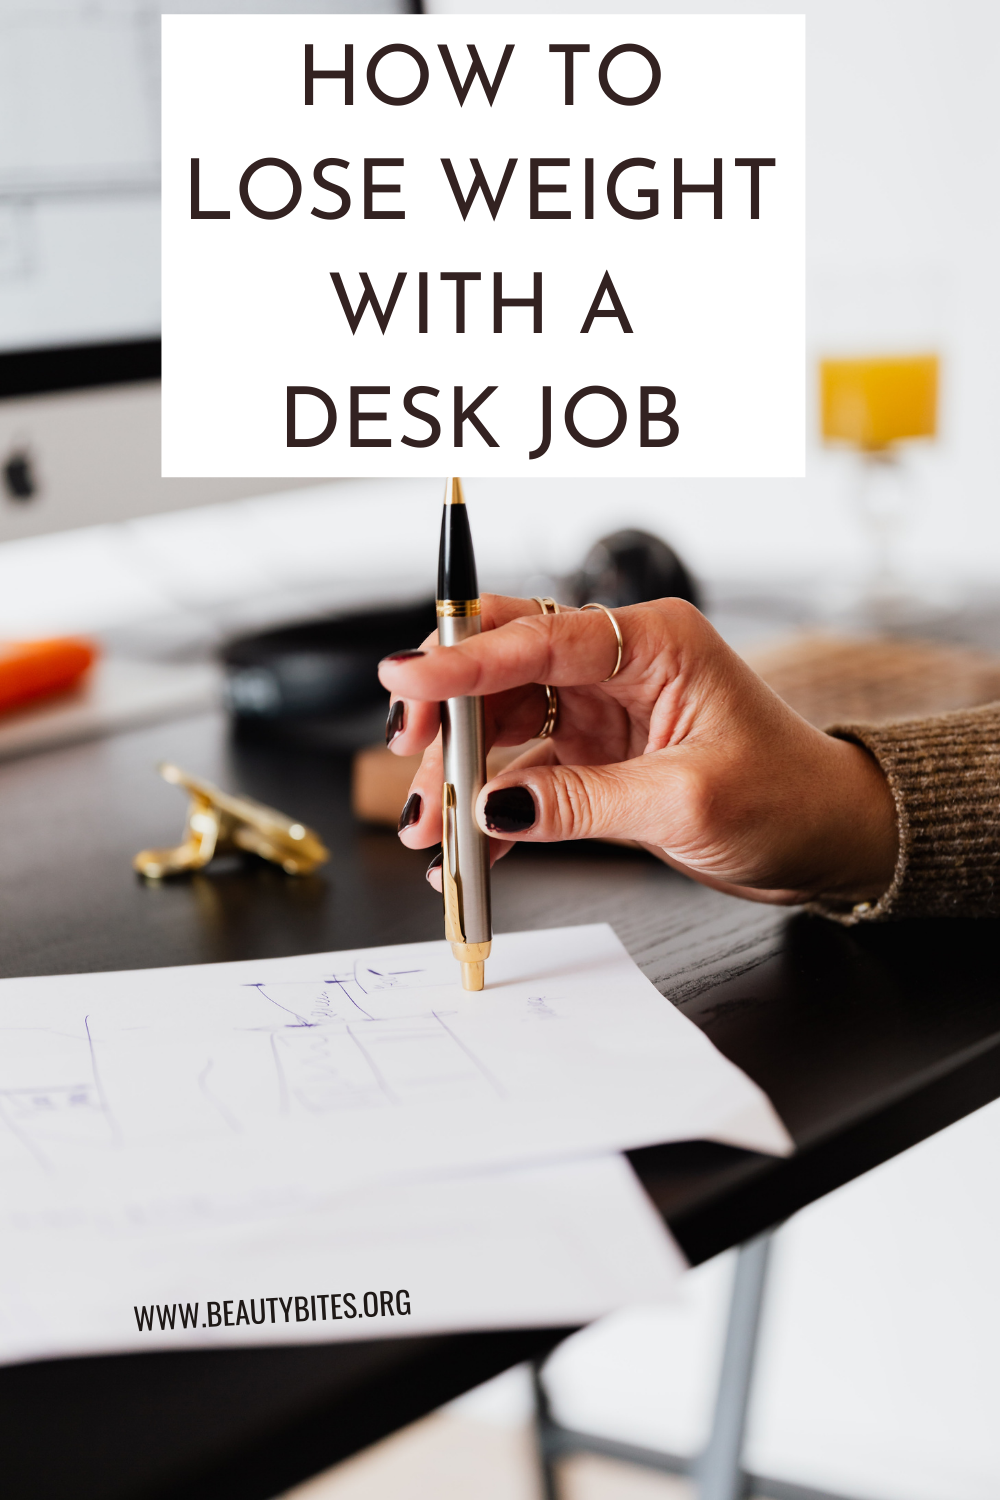 How to lose weight with a desk job: 5 weight loss tips and healthy habits to help you start a healthy lifestyle and get fit!